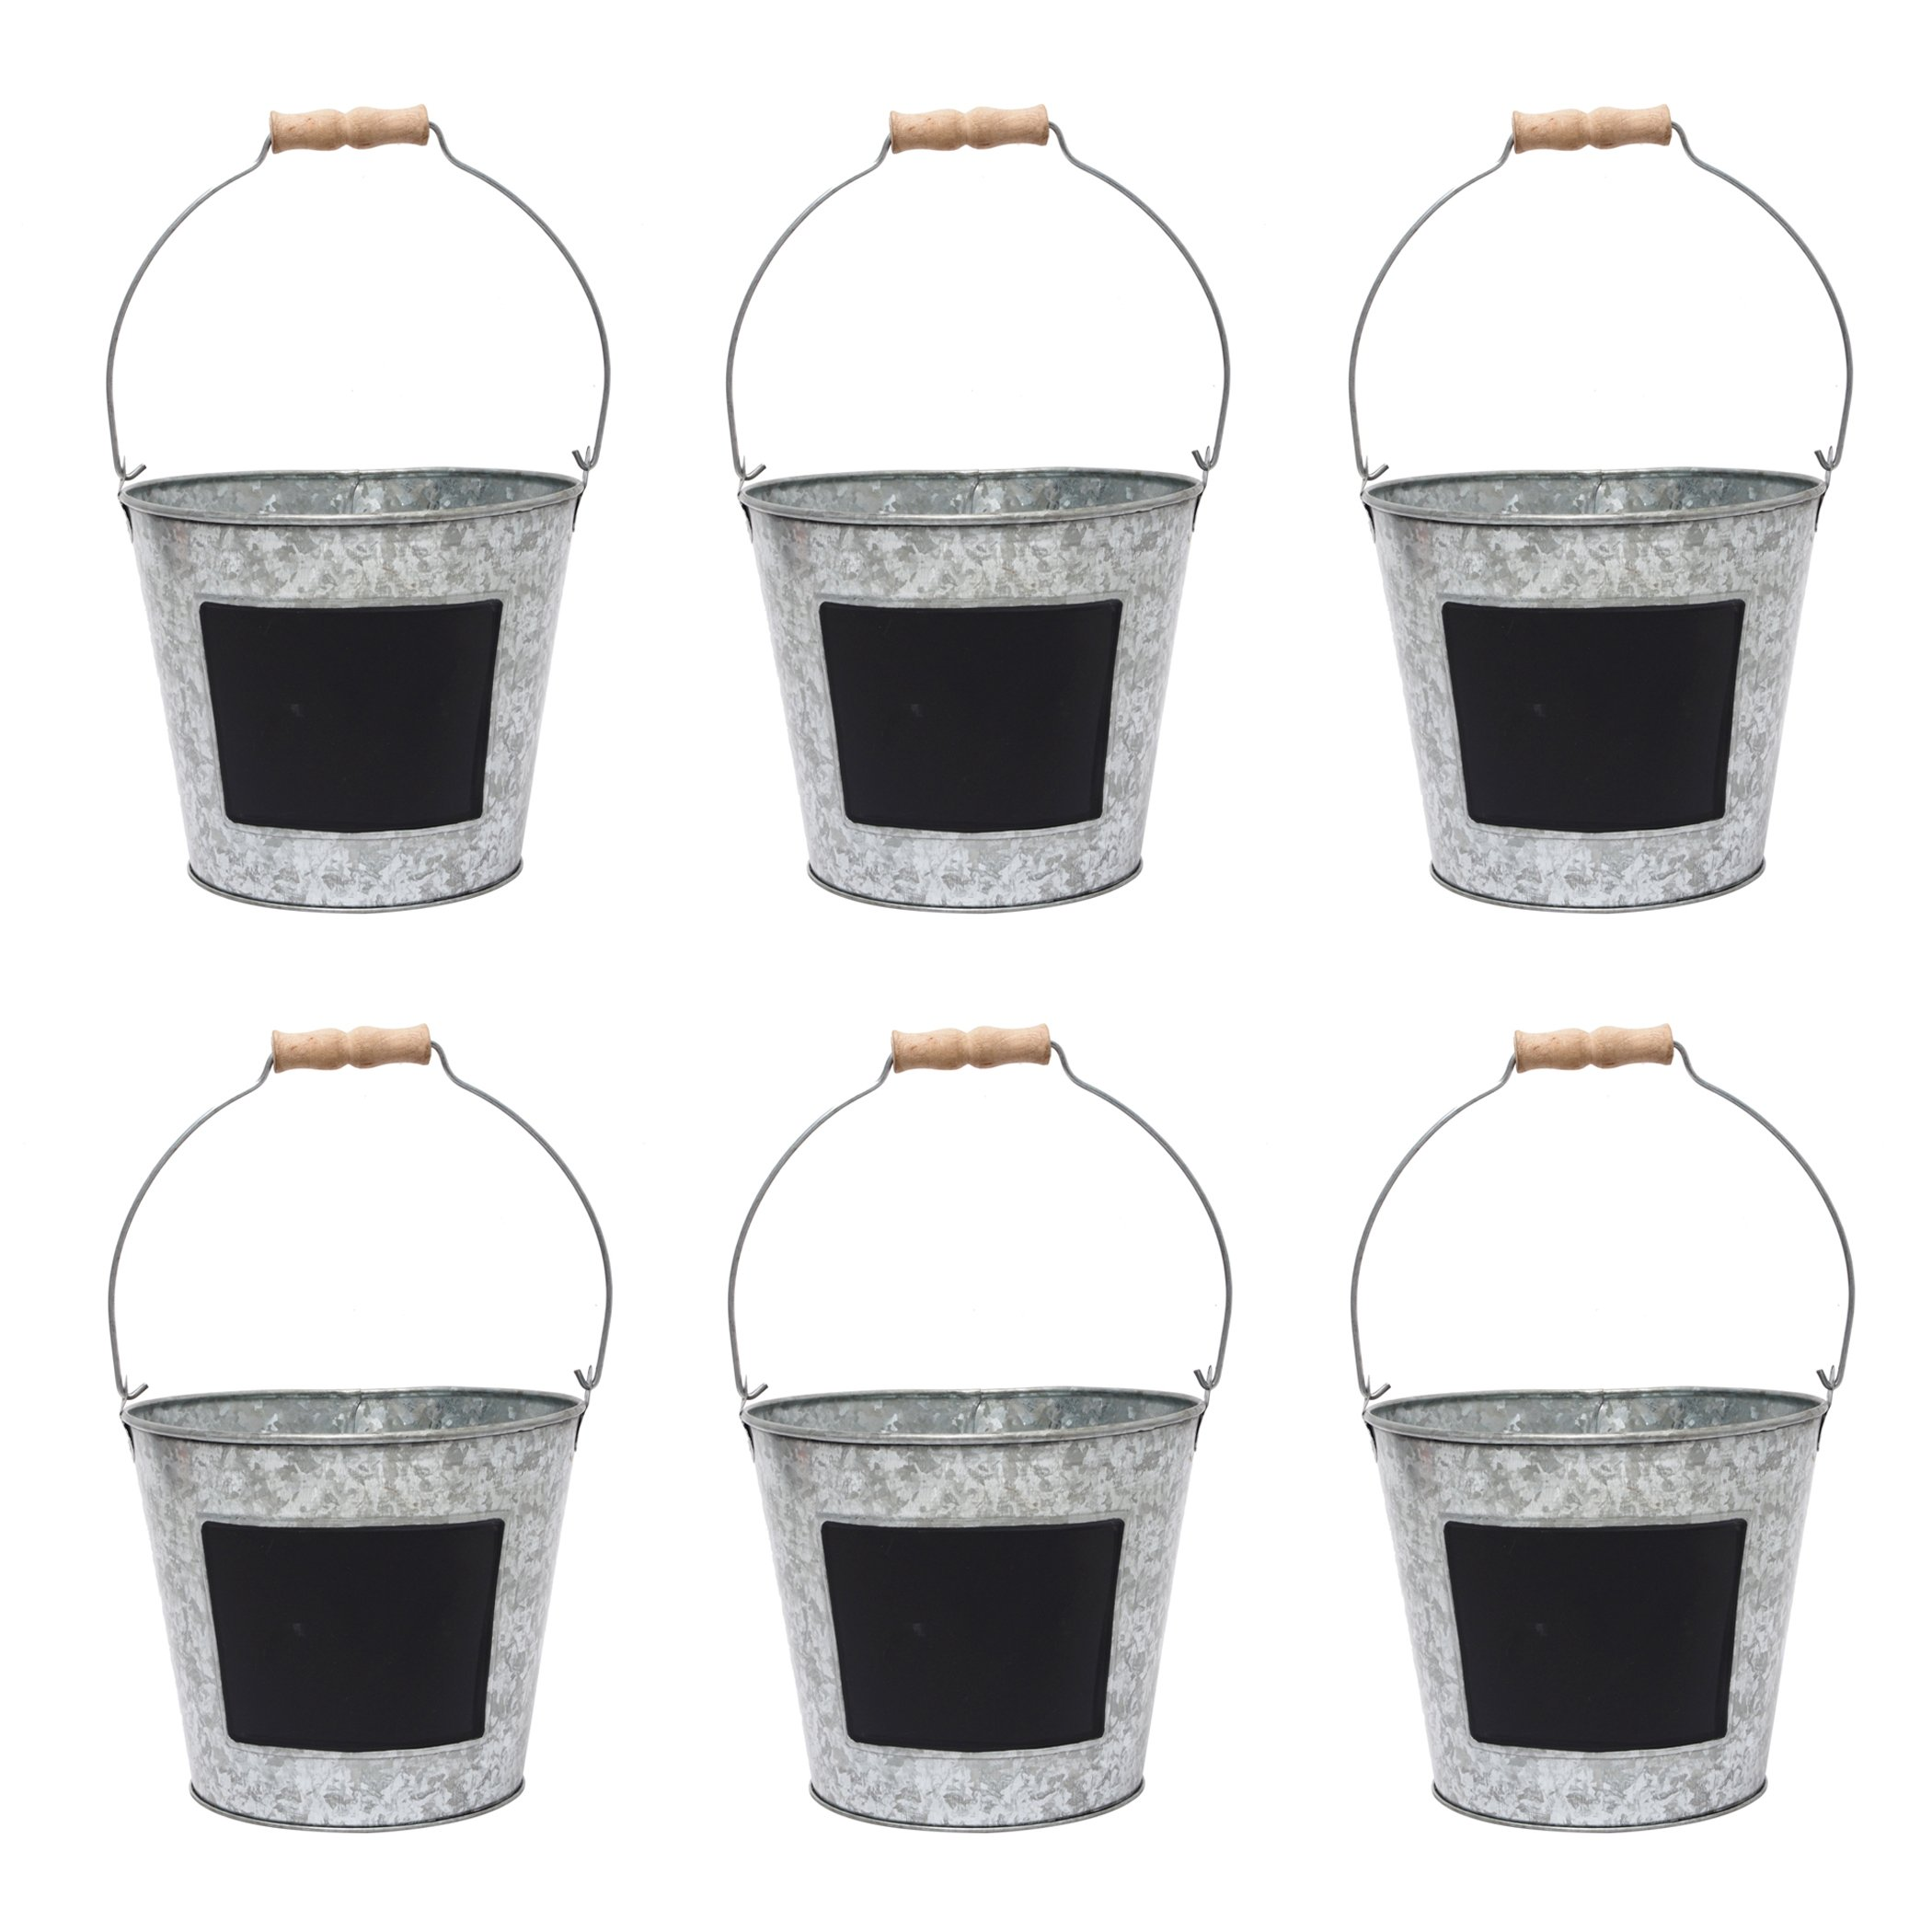 Hosley 7.5'' Diameter, Set of 6 Metal Pail With Chalkboard. Ideal Gift for Wedding, House Warming, Floral Planter, DIY, Craft, Home Office, Party, Garden, Patio P1